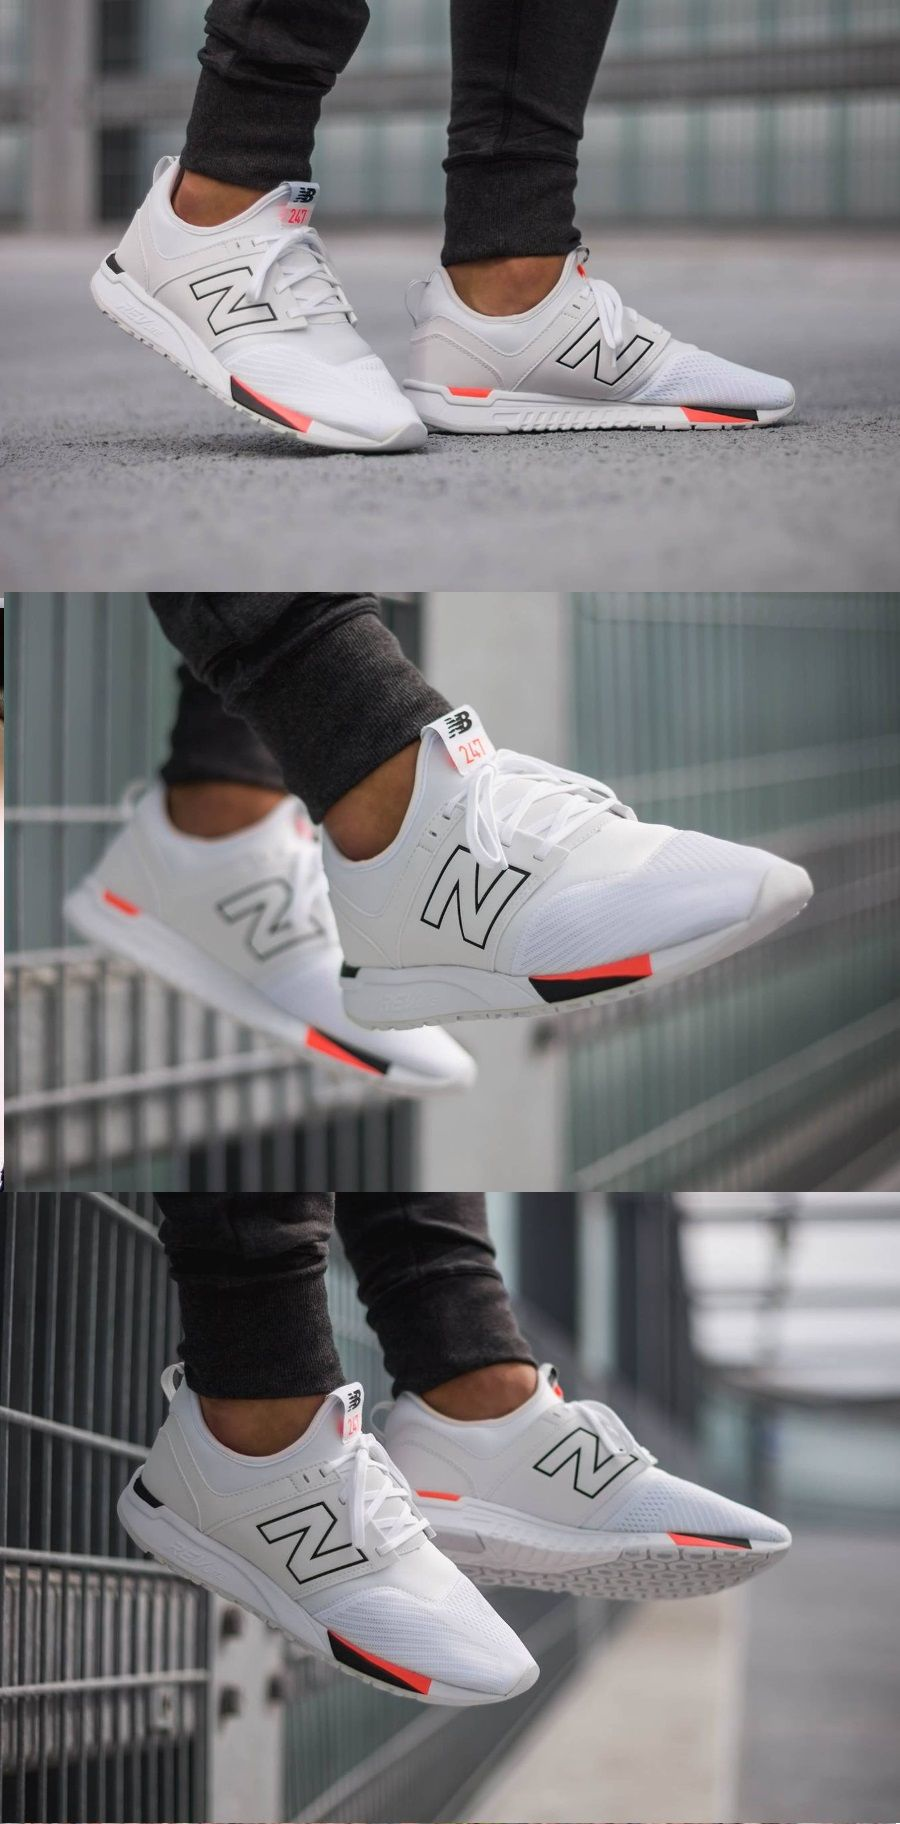 New Balance 247 - Classic White Black | Sneakers men fashion ...